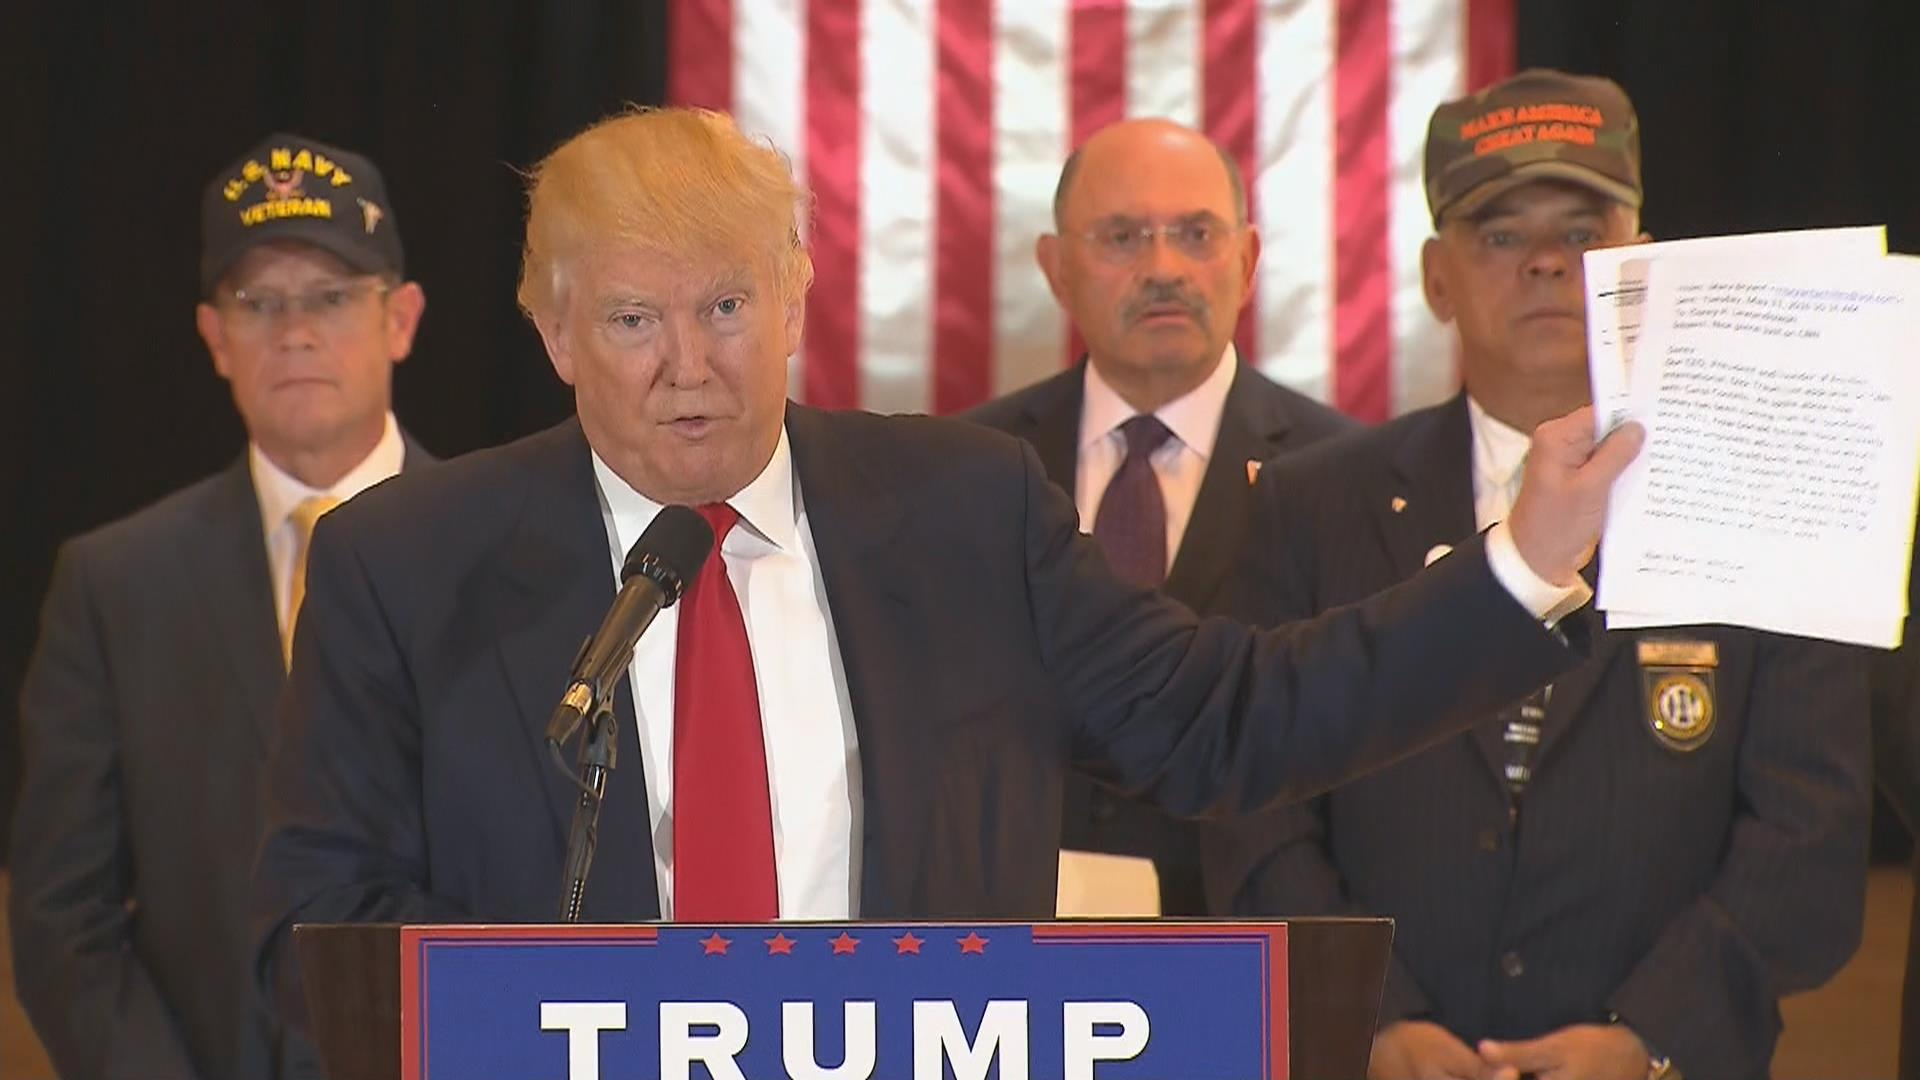 Trump Gave Millions to Vets Groups After Media Report About Donations